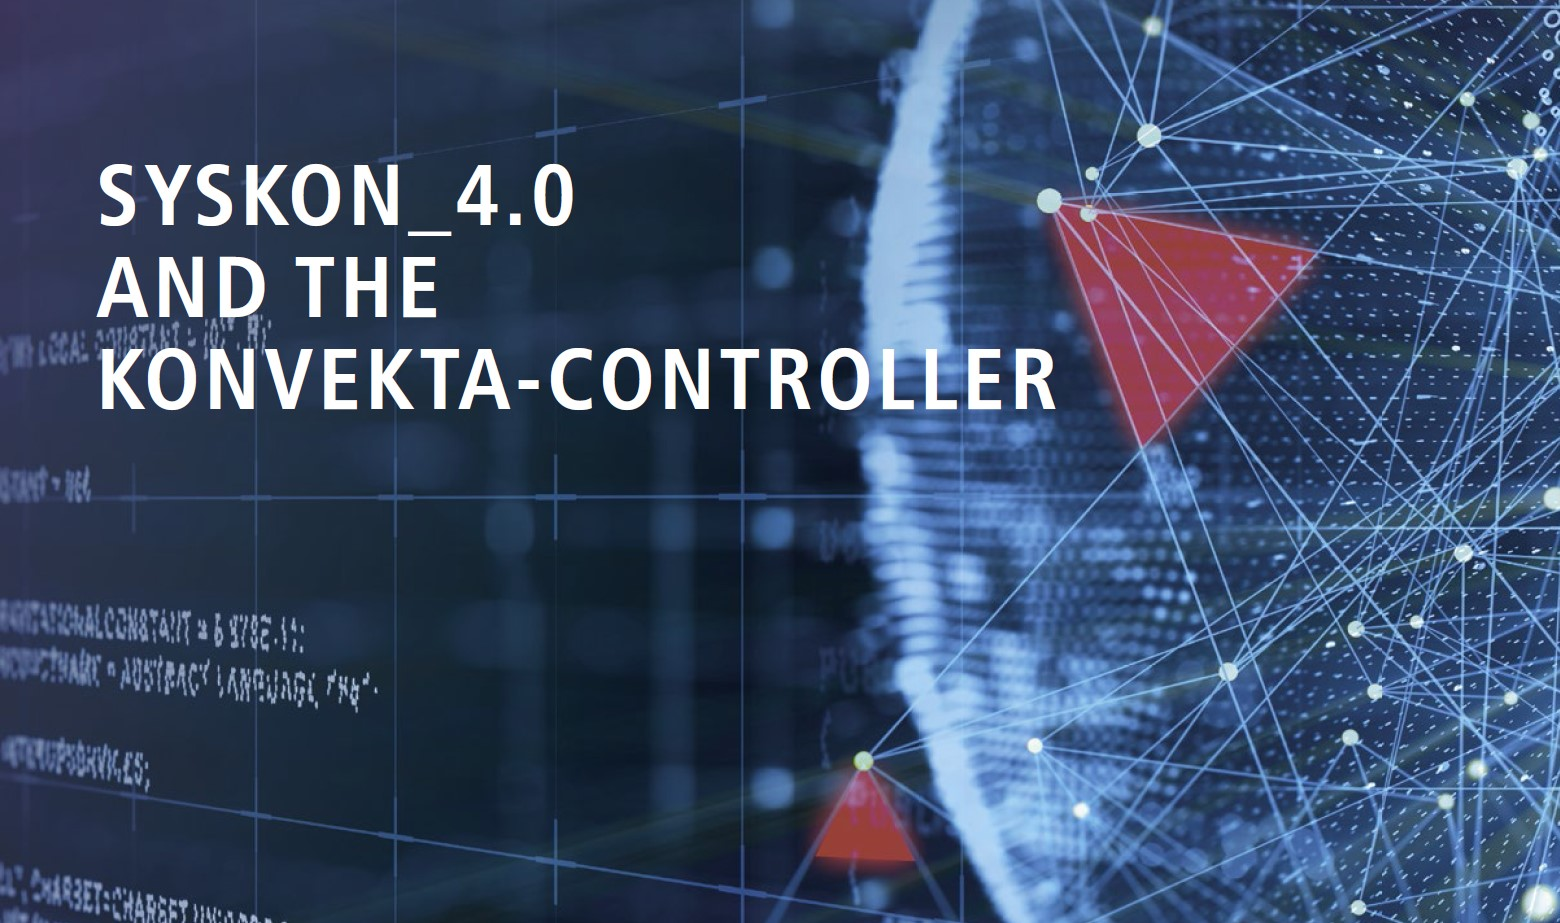 Syskon_4.0 and Konvekta-Controller